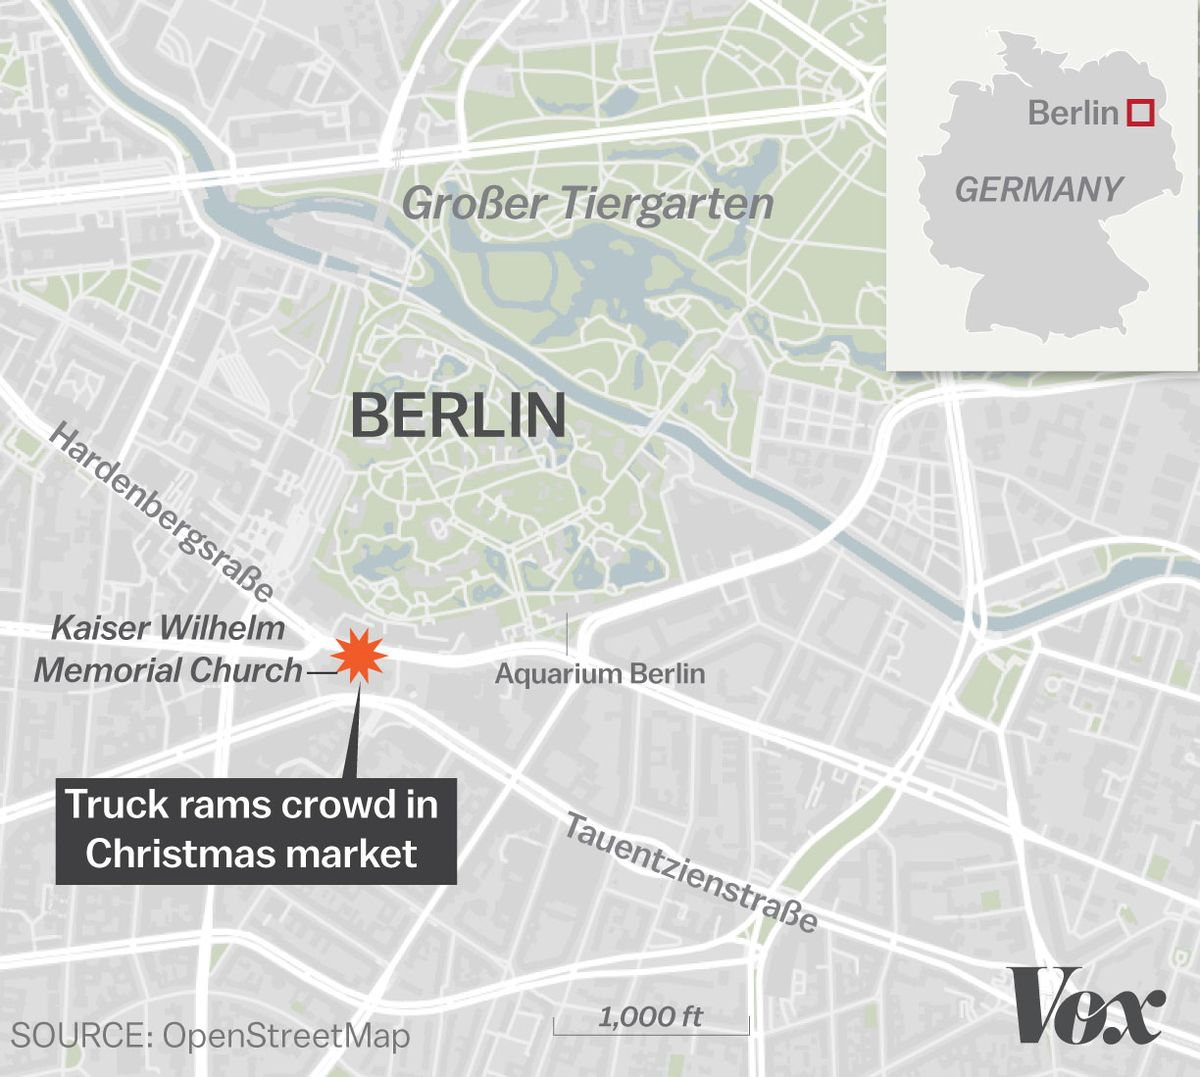 German authorities are investigating a deadly truck crash in Berlin ...